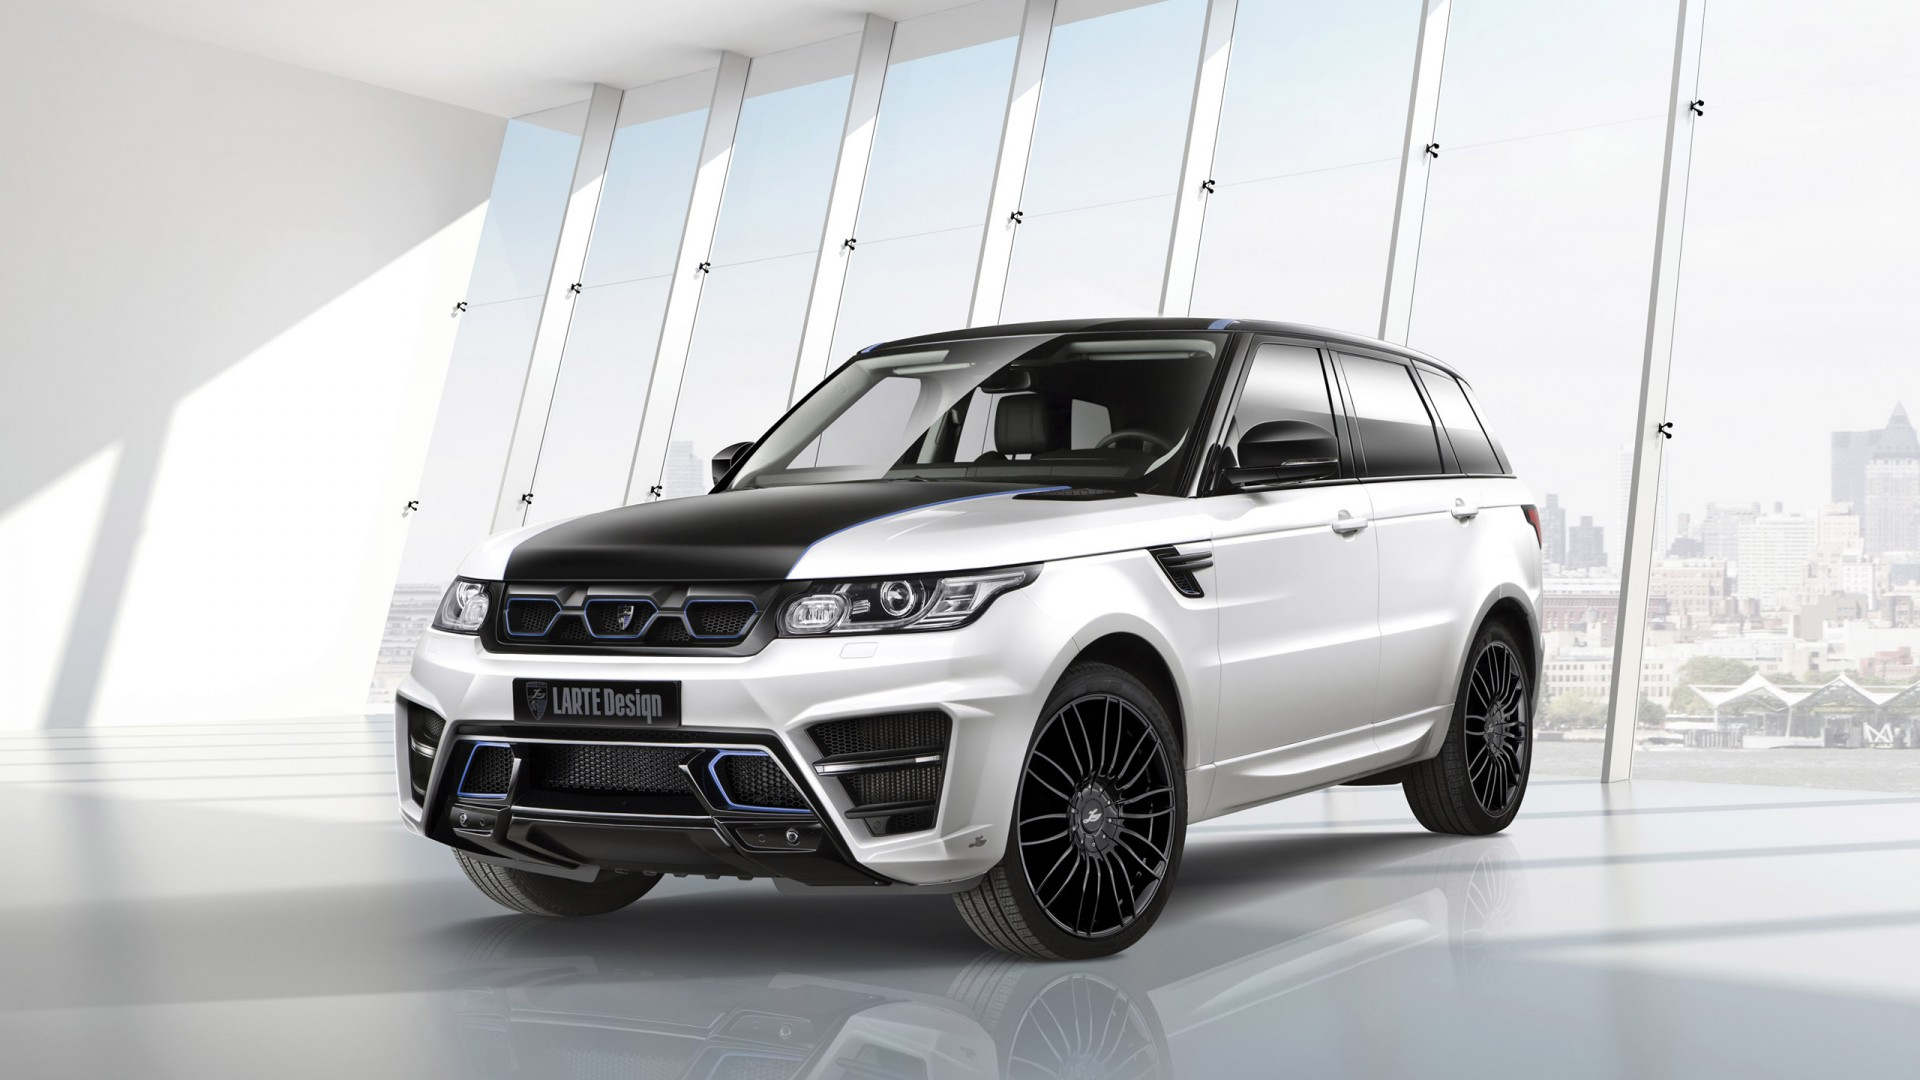 Range Rover Sport Iphone Wallpaper: Larte Design Range Rover Sport Wallpaper